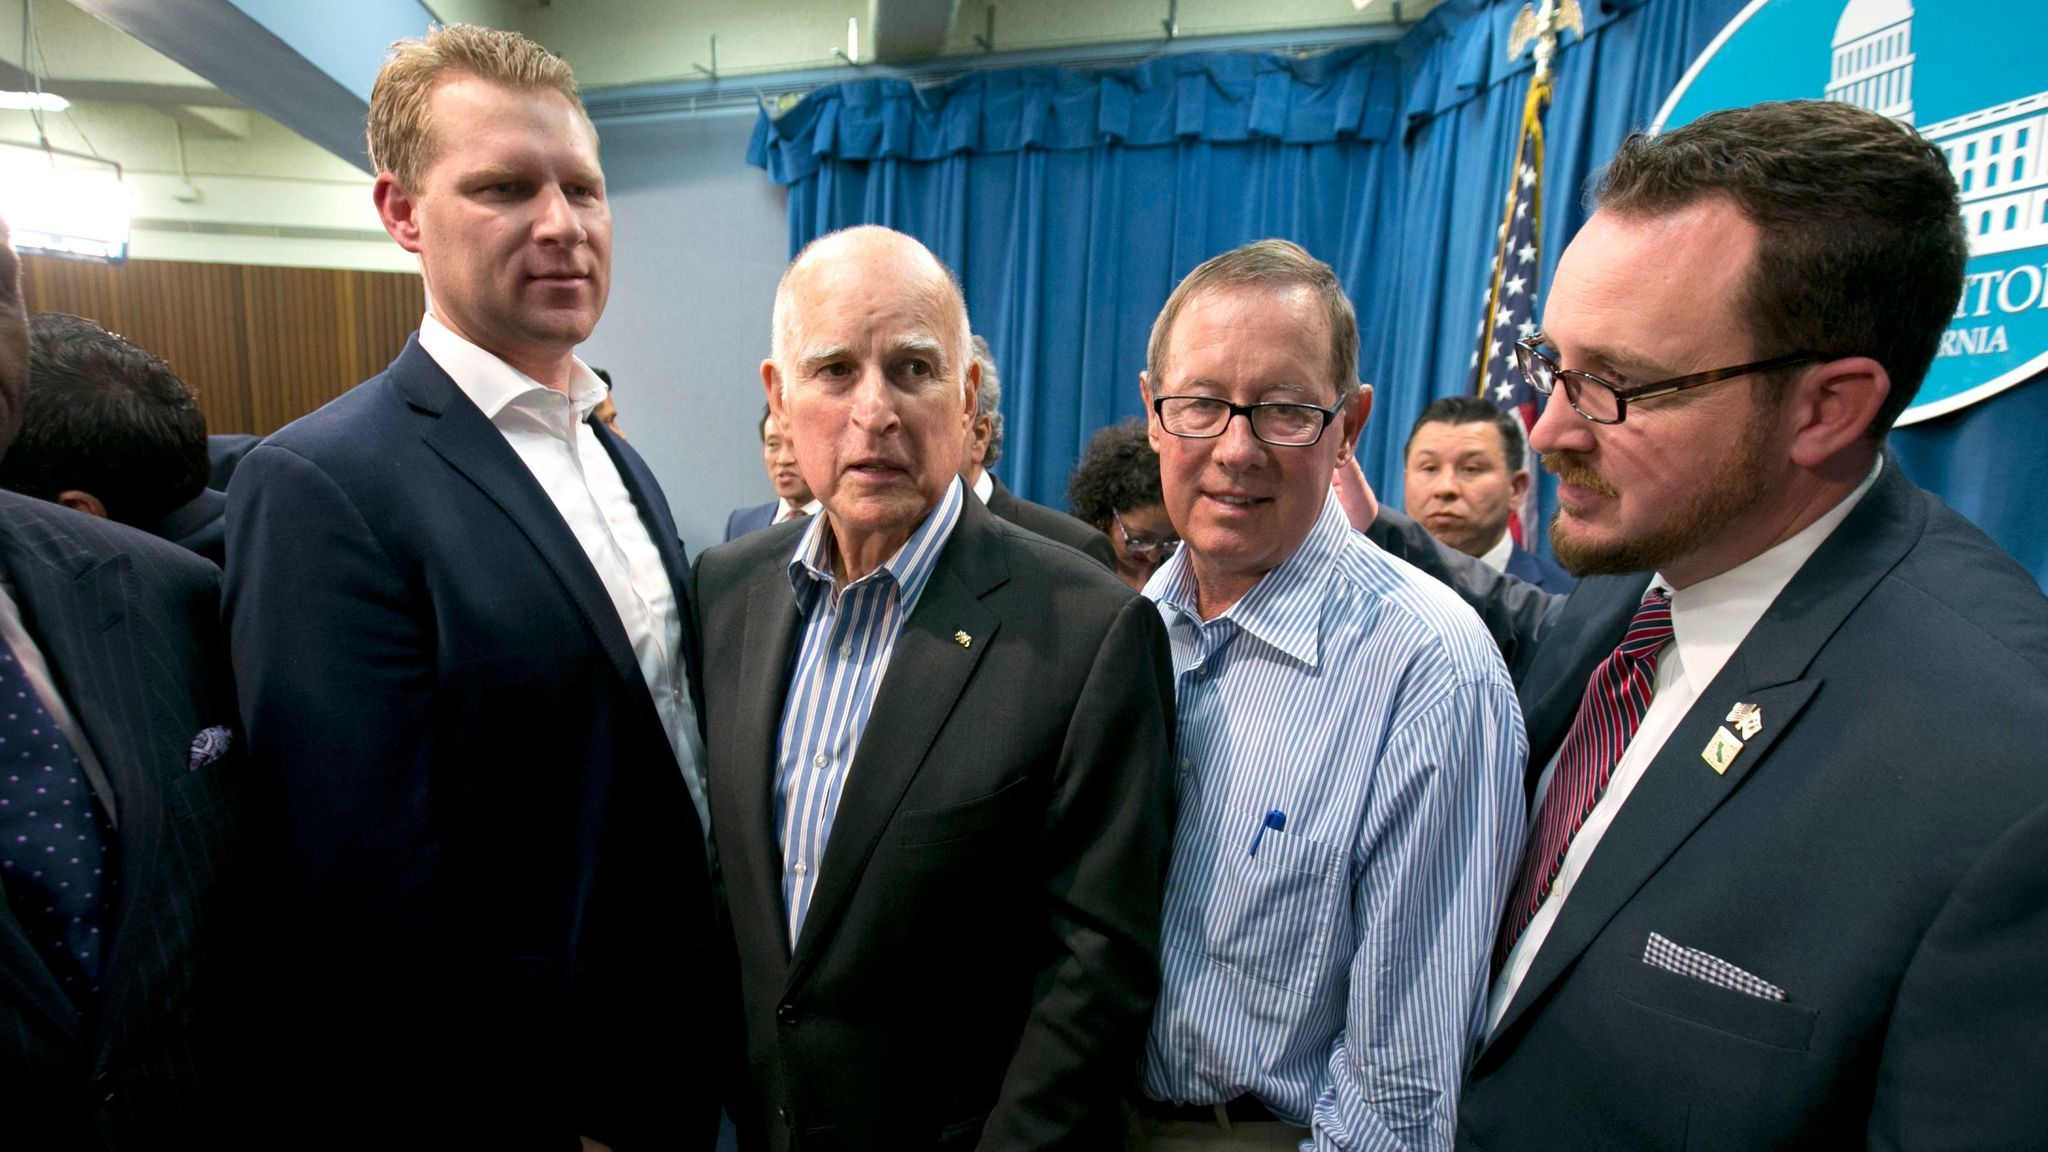 Gov. Jerry Brown, center left, flanked by Republicans who voted for the cap-and-trade extension: Assembly GOP leader Chad Mayes of Yucca Valley, Sen. Tom Berryhill of Modesto and Assemblyman Devon Mathis of Visalia.